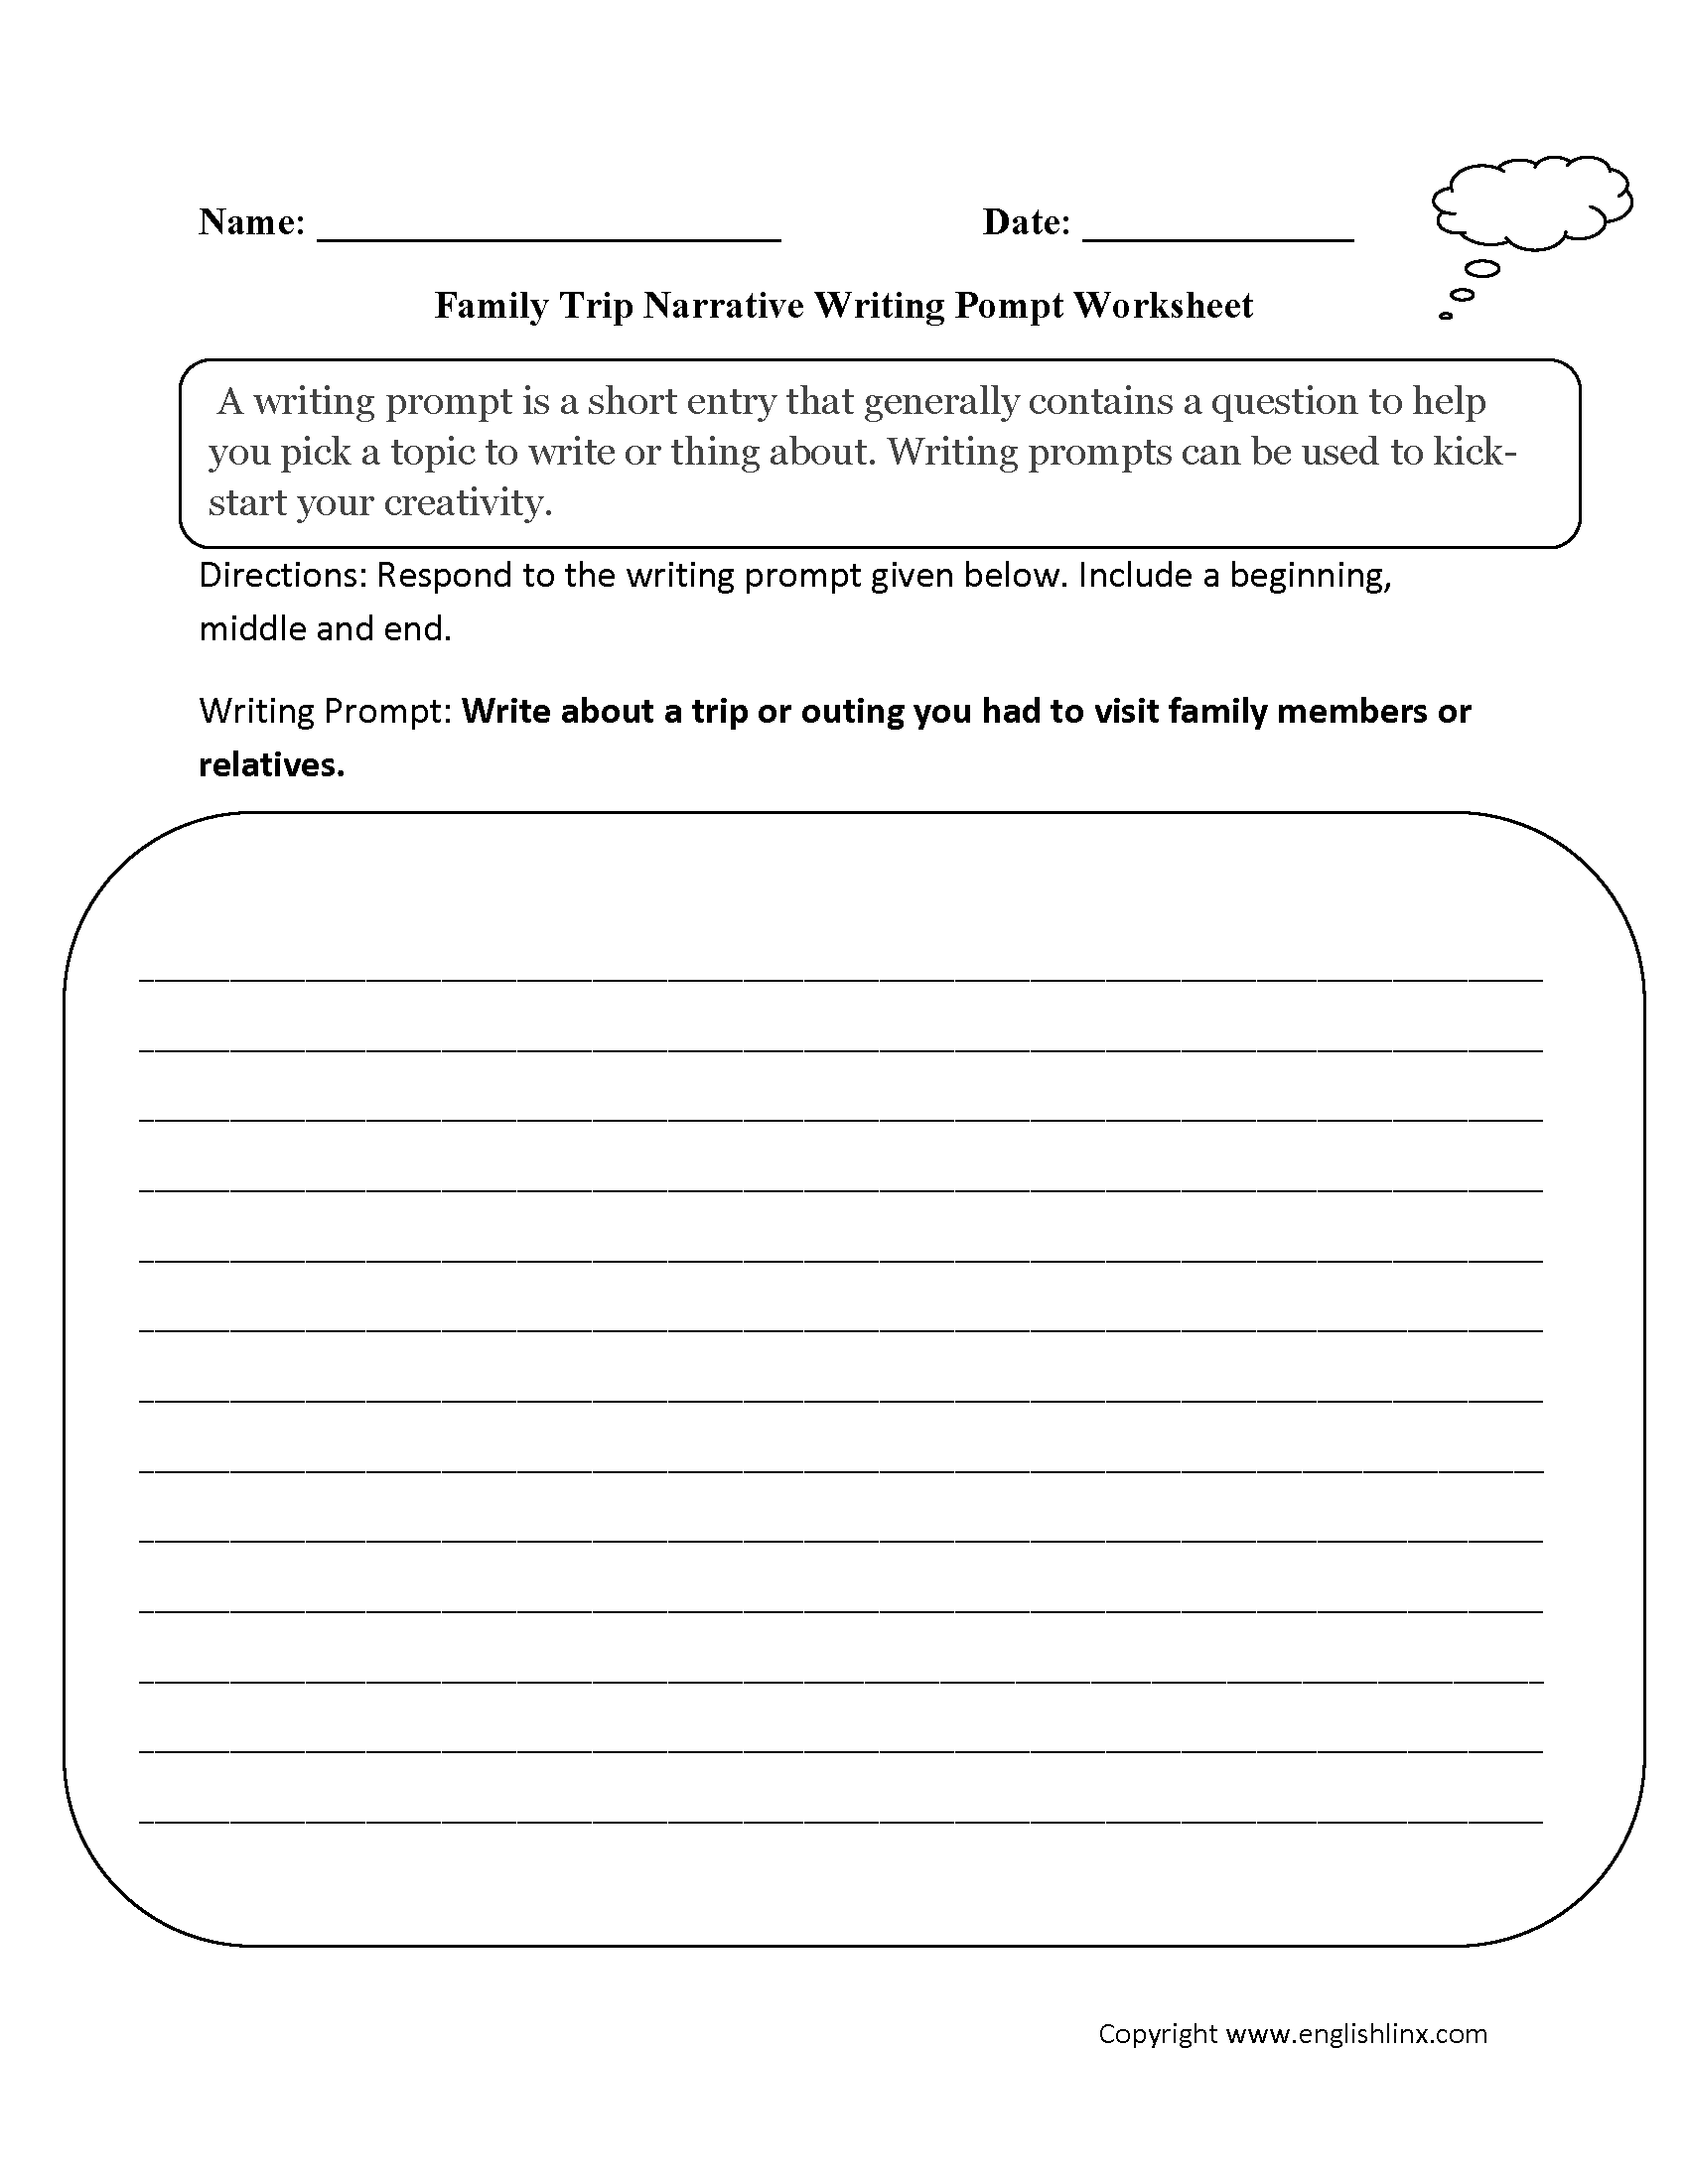 Printables 3rd Grade Writing Prompts Worksheets englishlinx com writing prompts worksheets worksheets